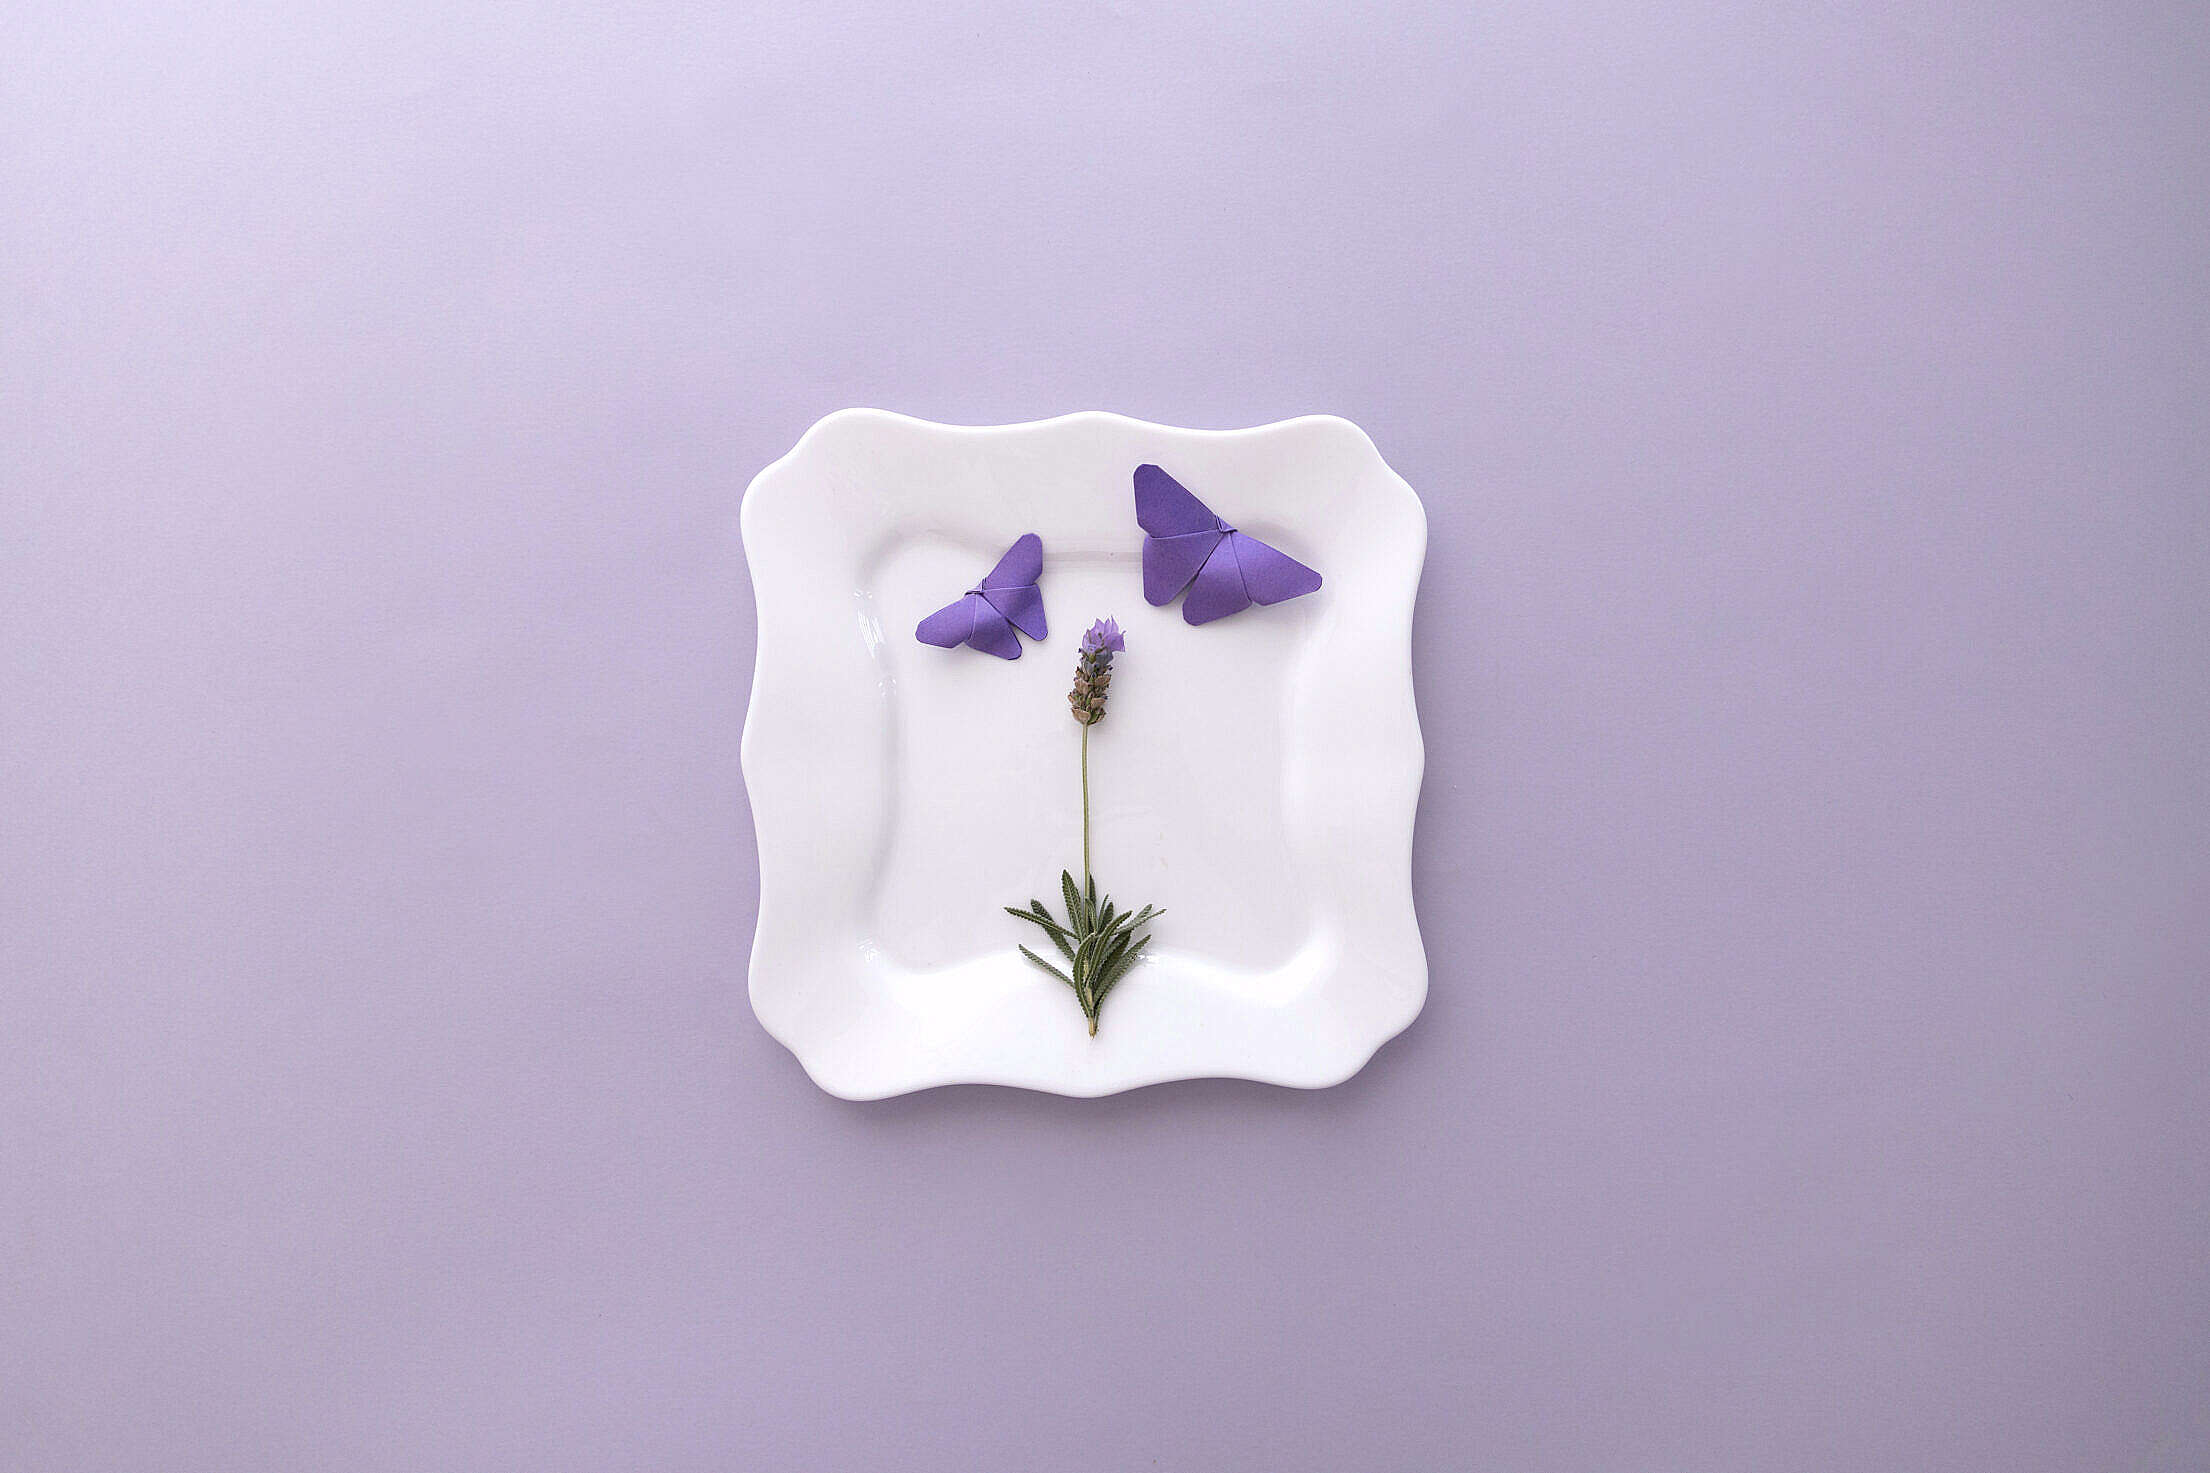 Lavender Flat Lay Flower and Butterflies Free Stock Photo